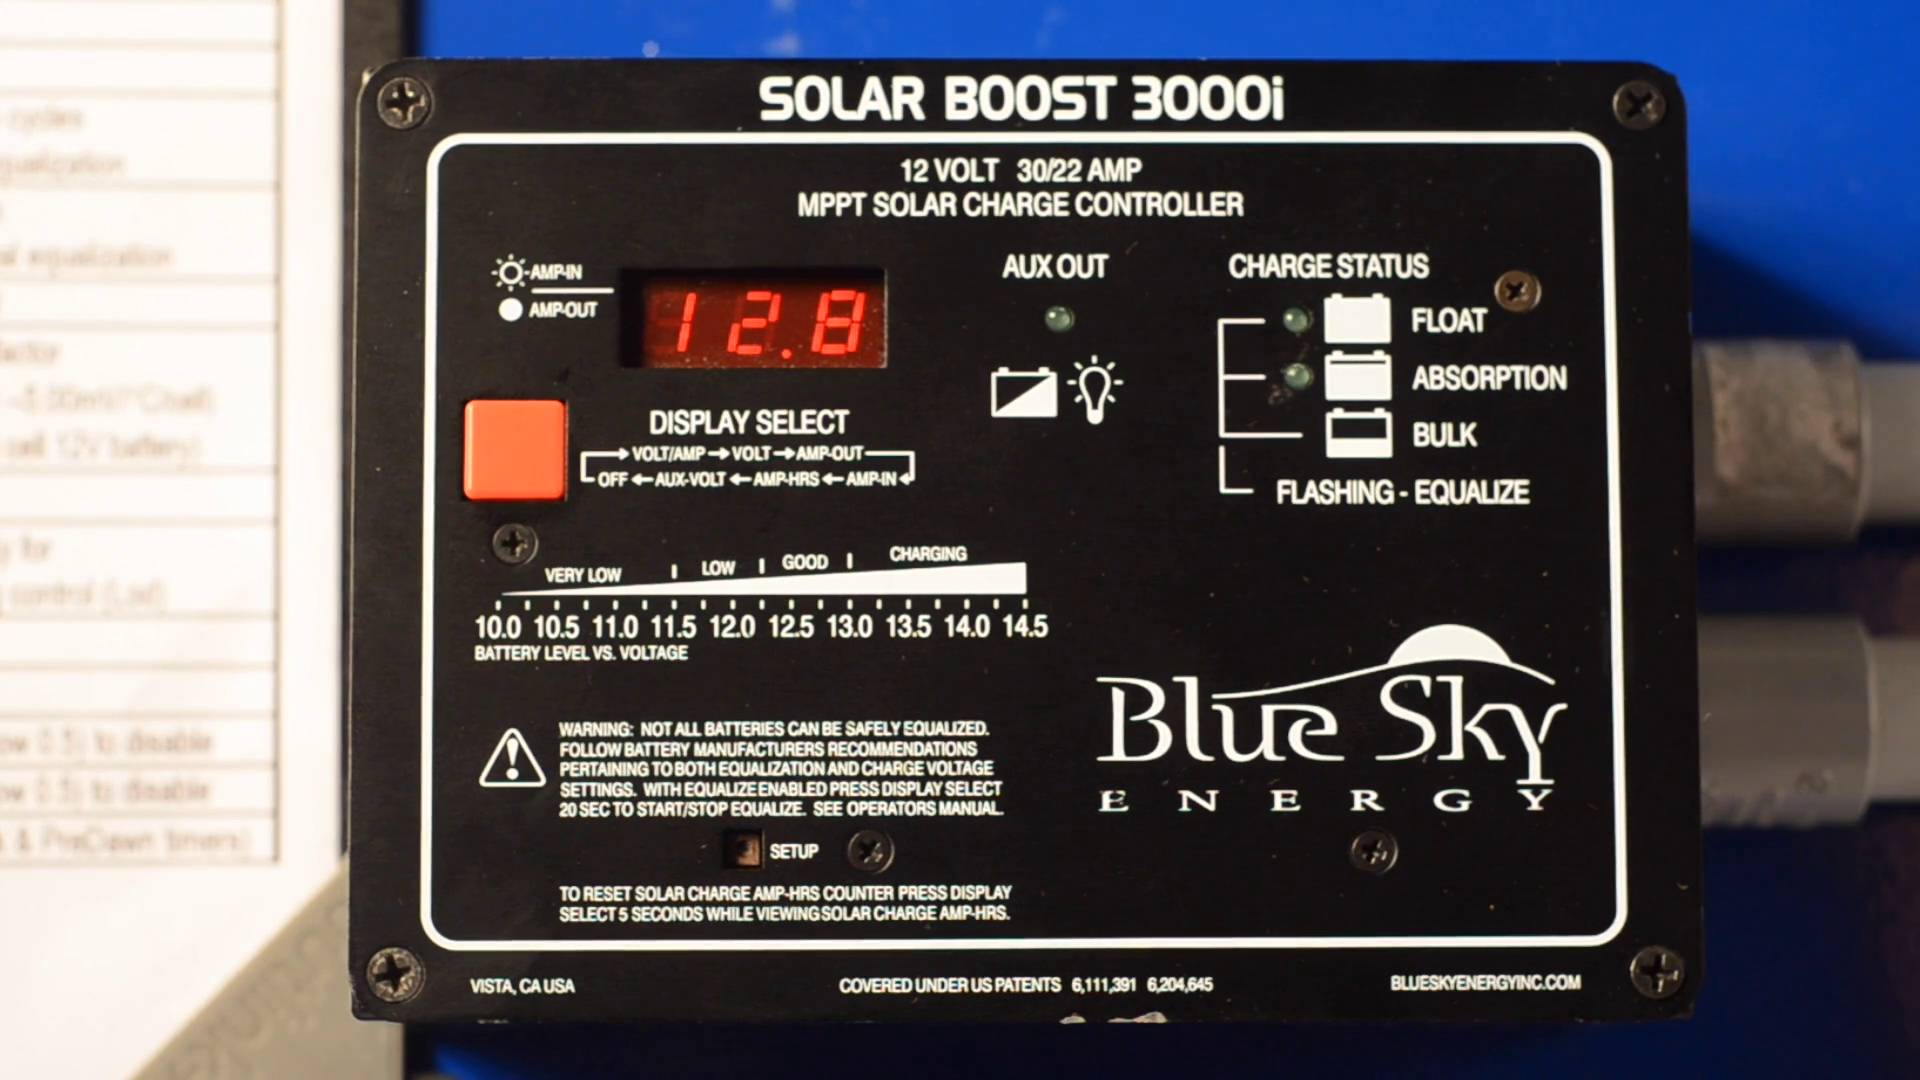 12 Volt Battery Wiring Diagram Dual Monitor Video Schematic Diagrams Batteries Parallel On In Series Blue Sky Energy Inc Frequently Asked Questions Technical Tips